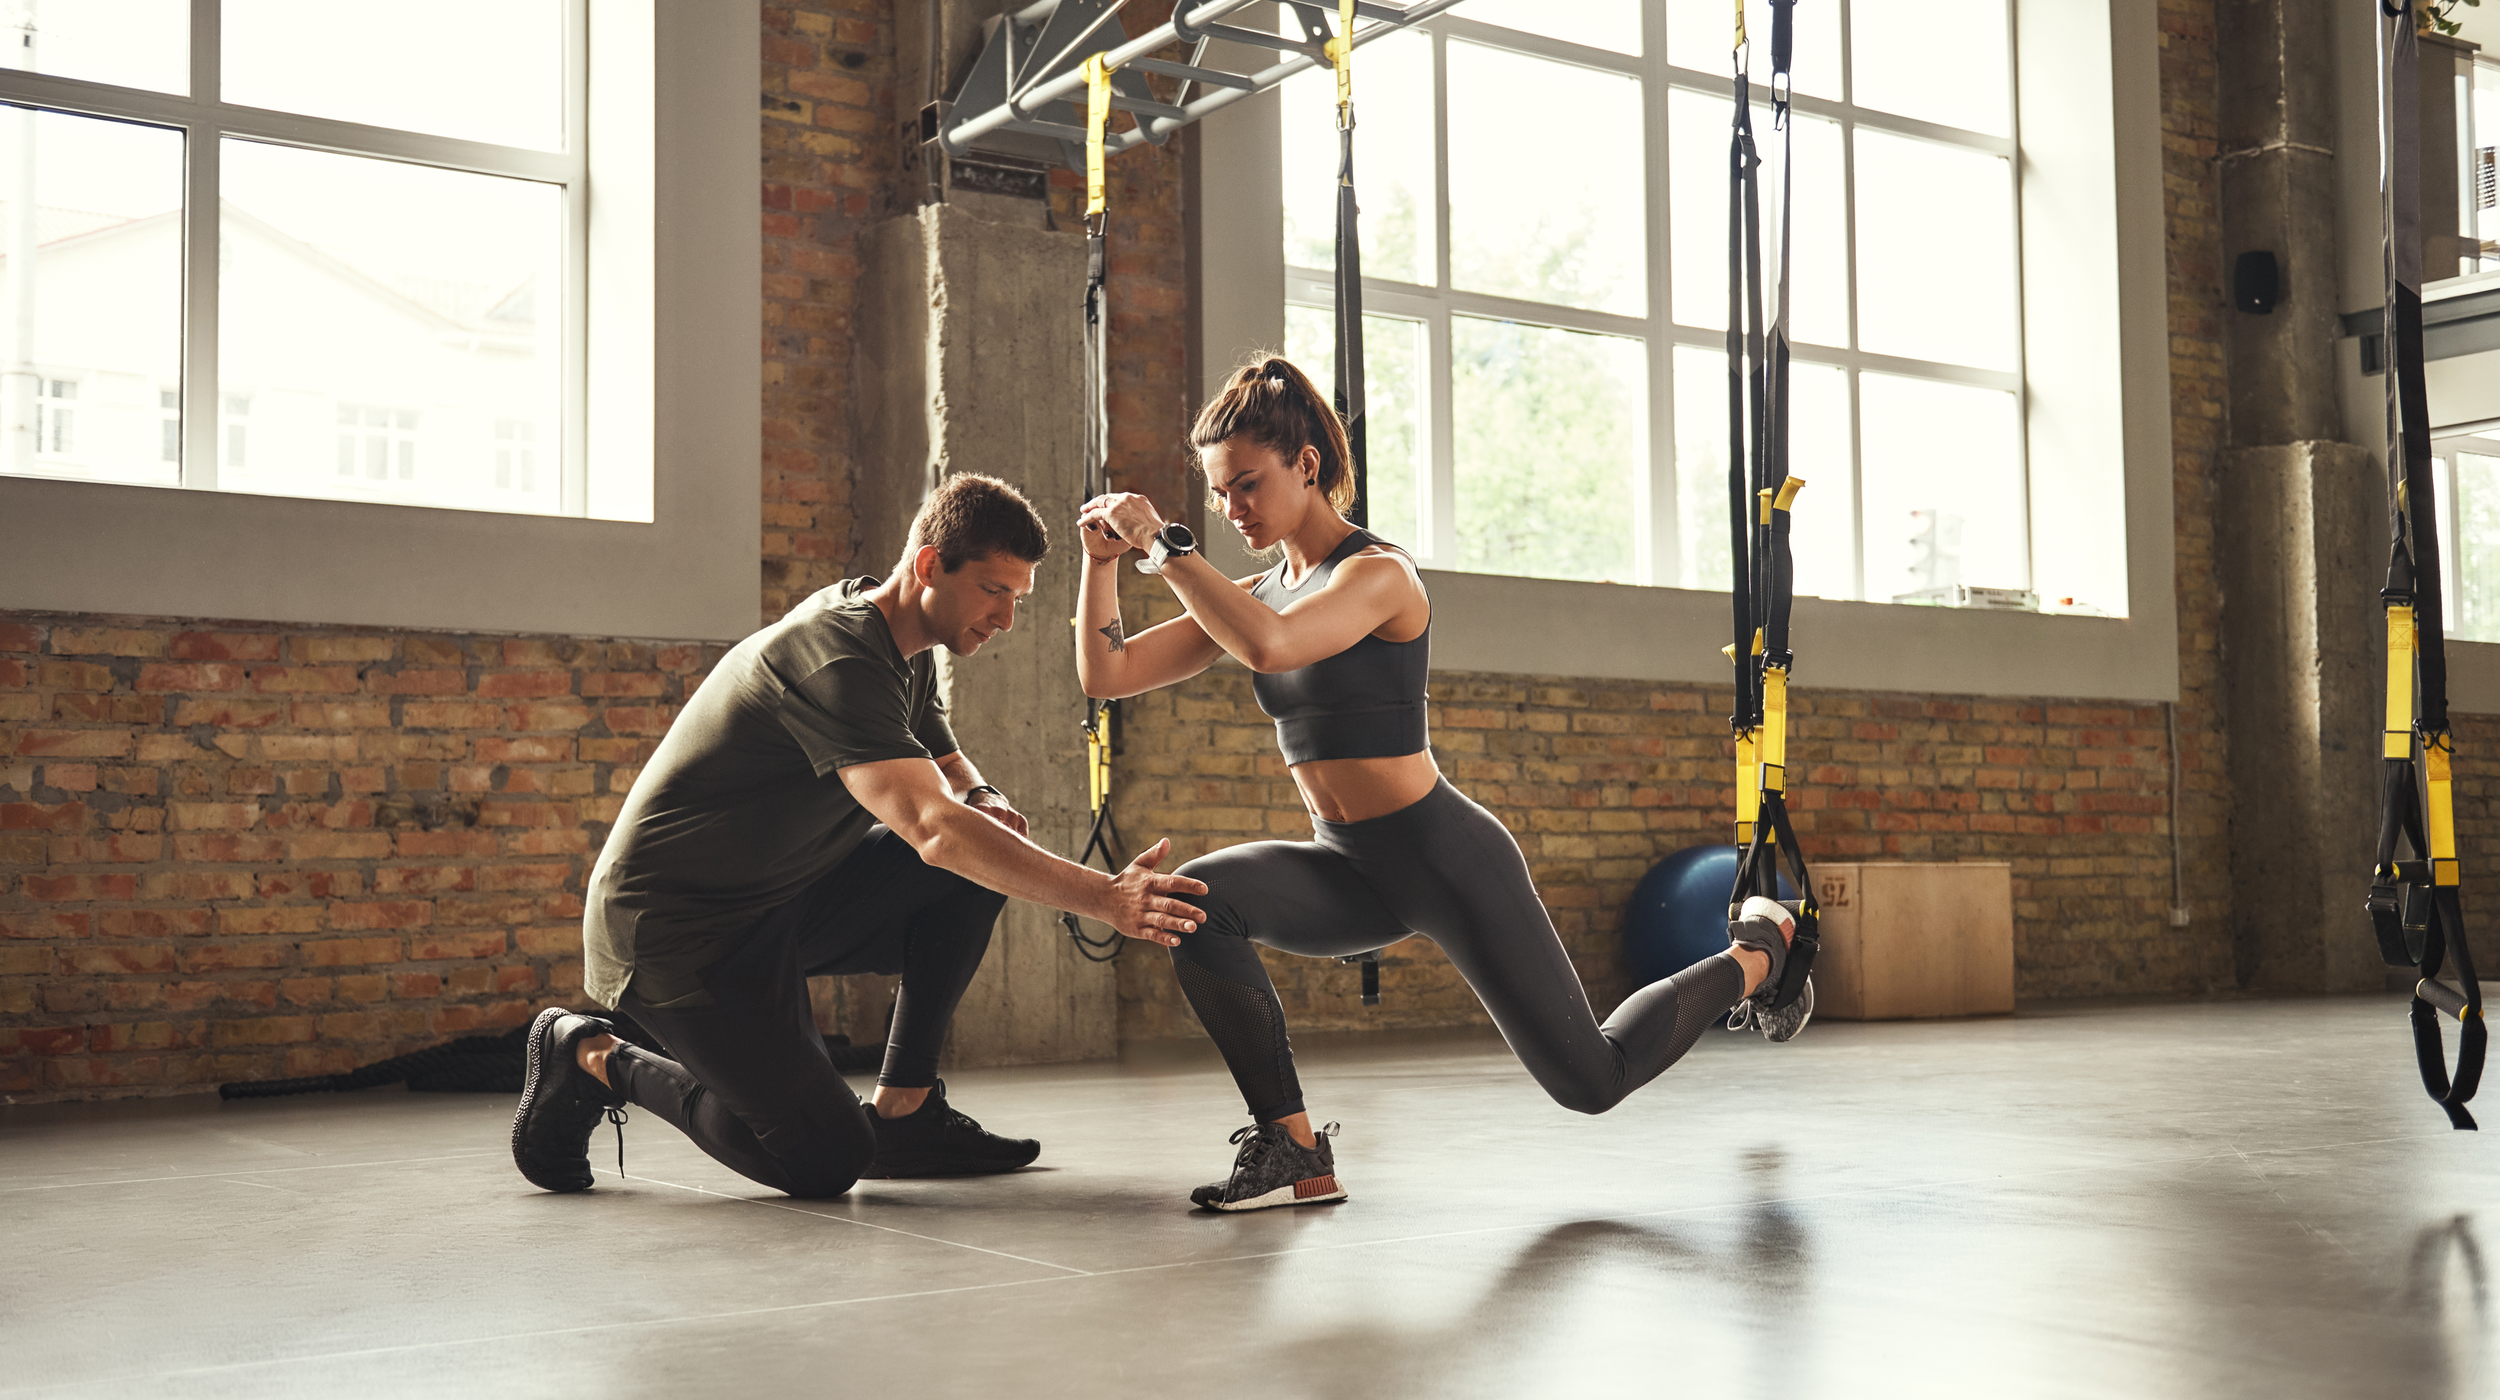 What You Need to Know if You Want to Switch Your Career to Personal Training